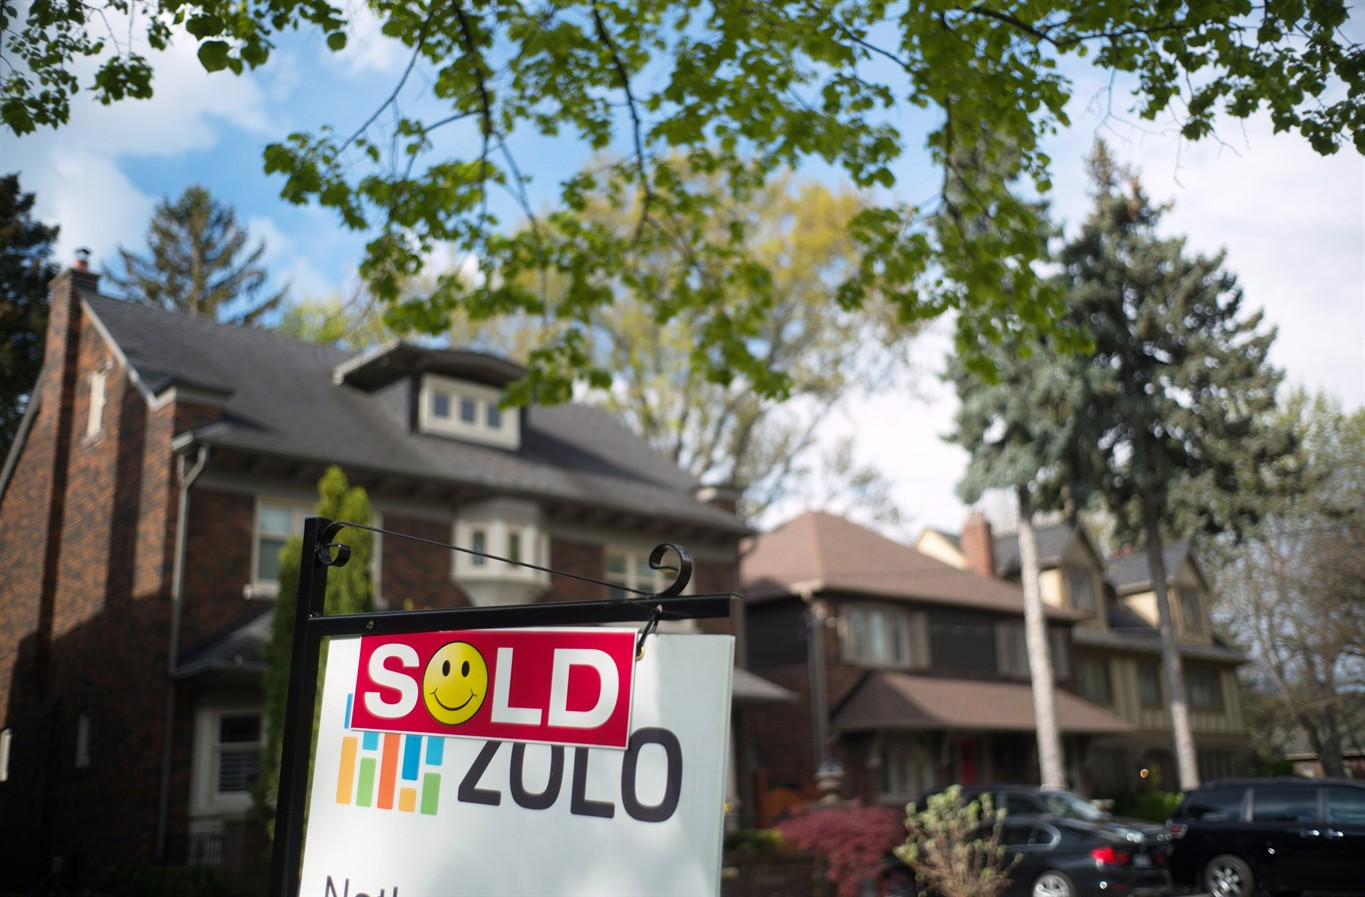 Toronto housing market continues slowdown with August price drop